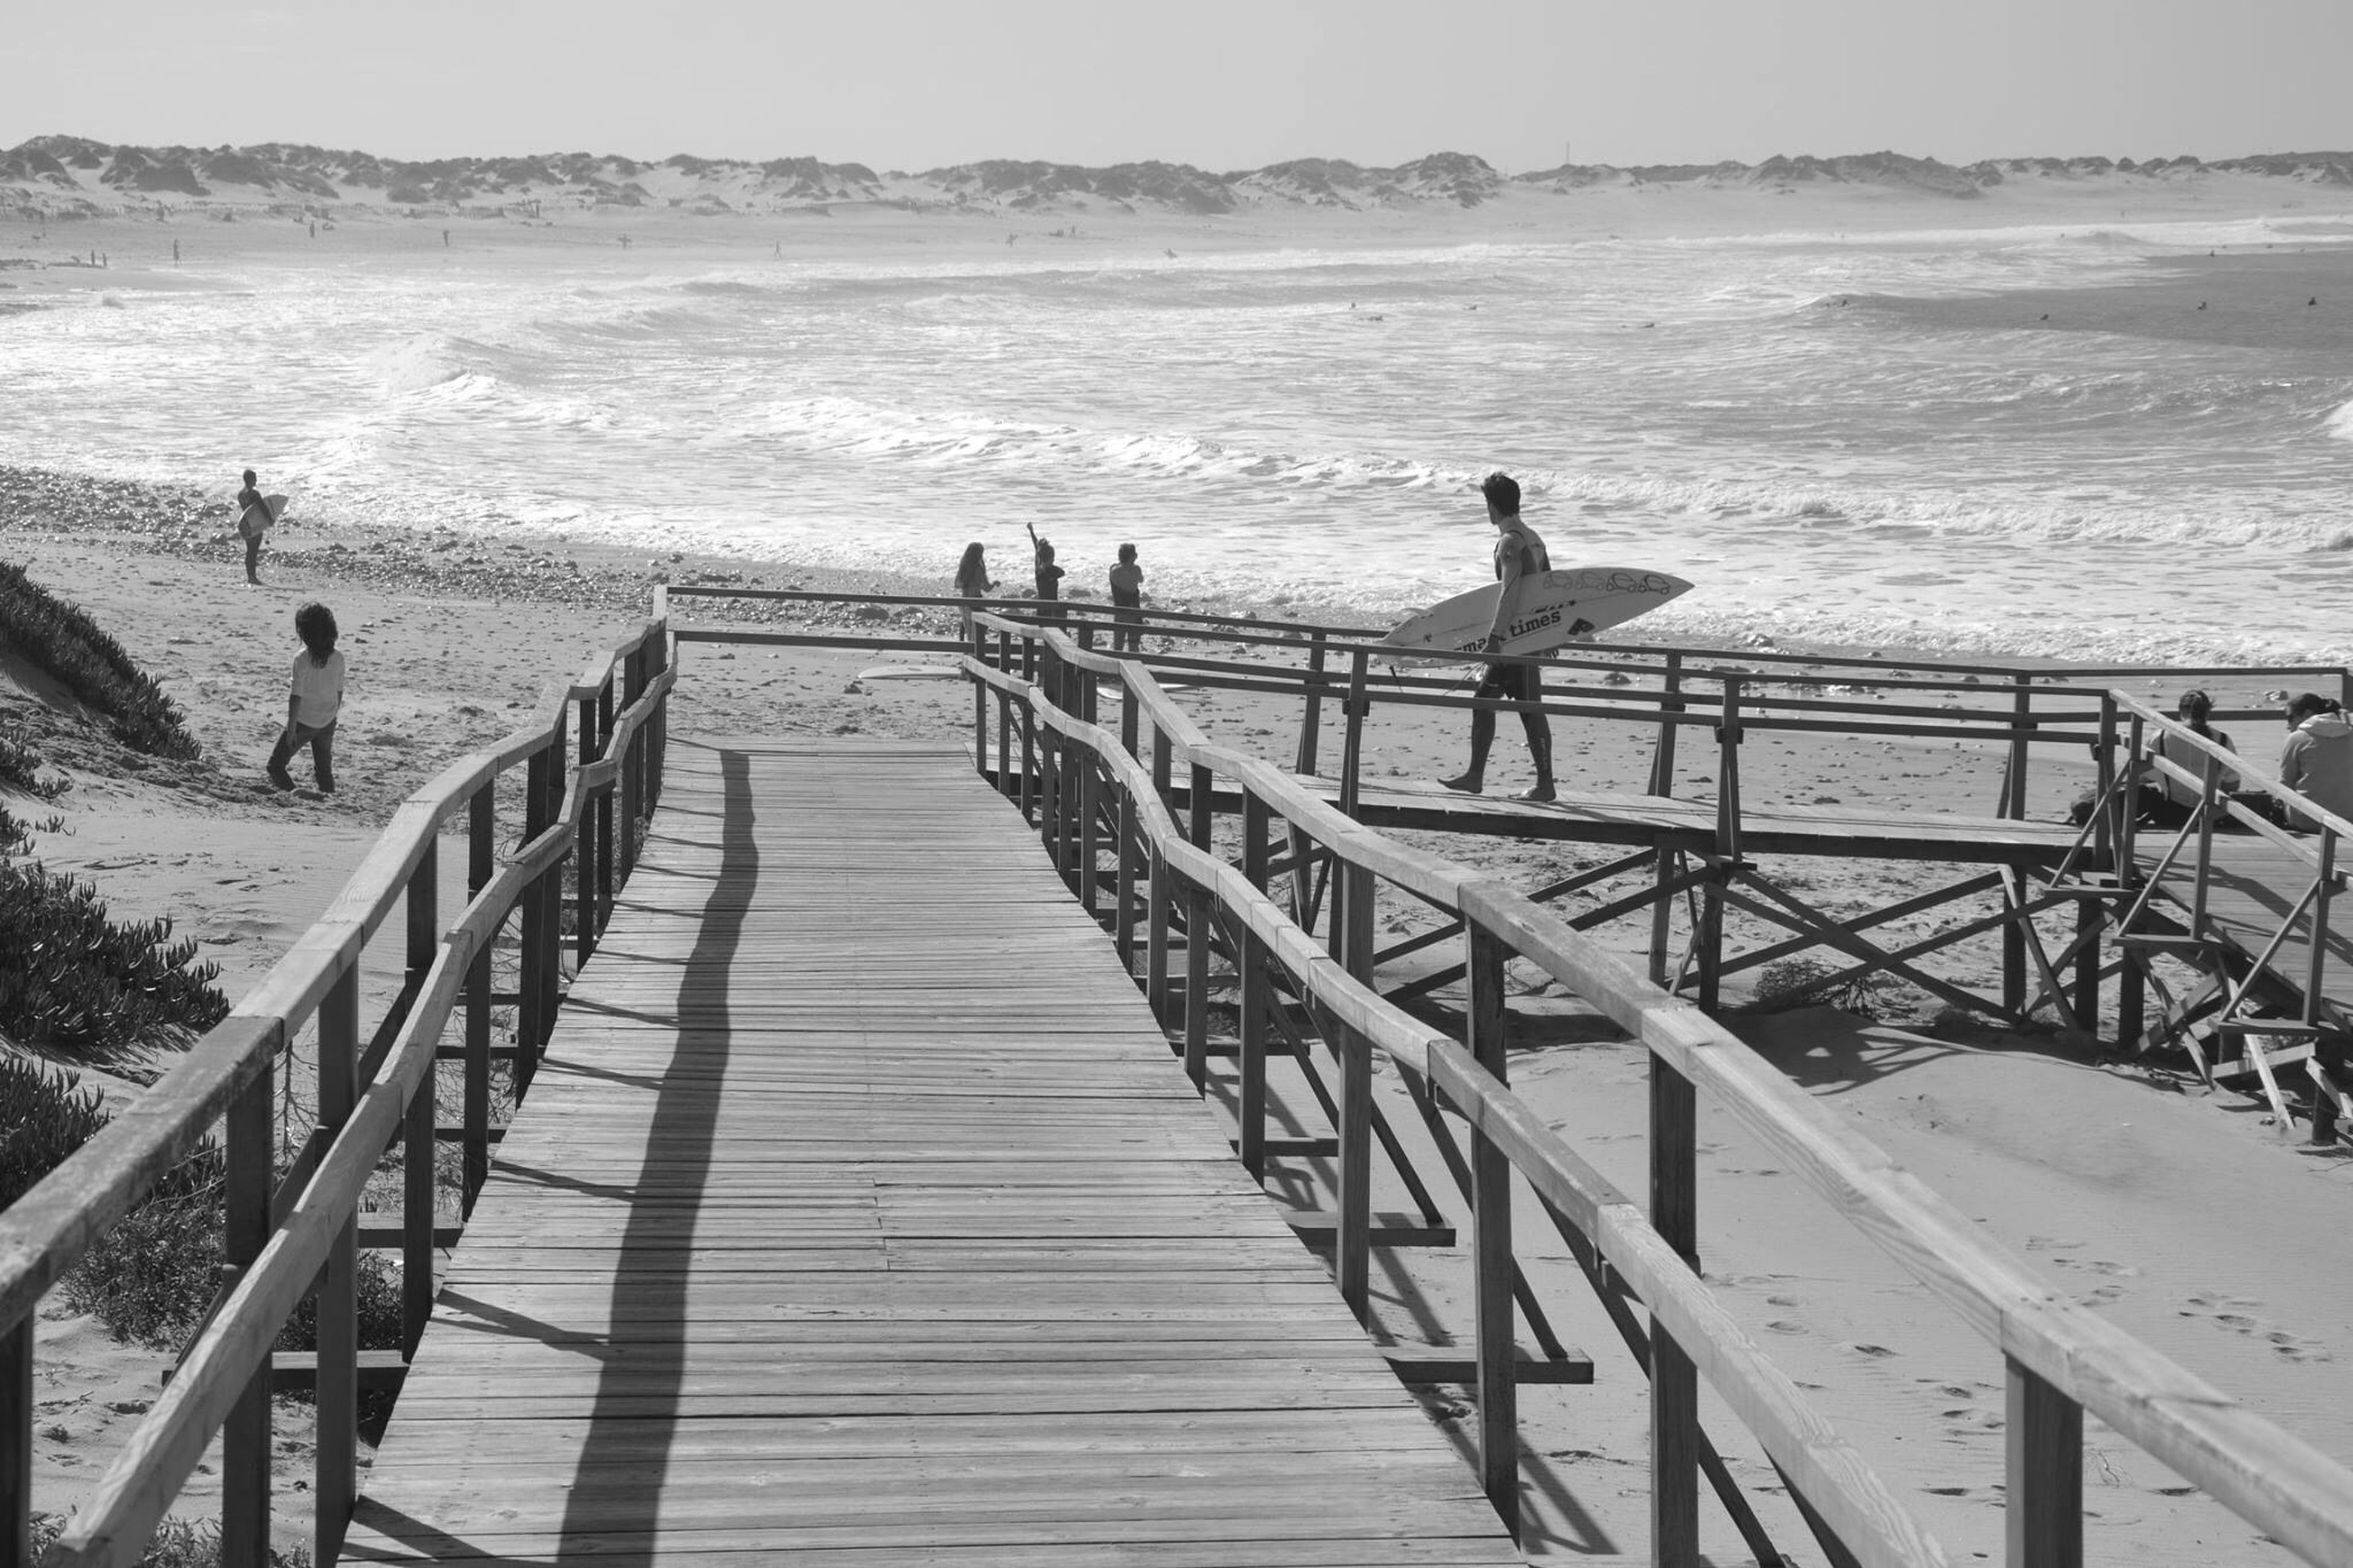 sea, beach, water, sand, shore, leisure activity, pier, horizon over water, railing, tranquil scene, scenics, tranquility, vacations, lifestyles, nature, wood - material, beauty in nature, person, boardwalk